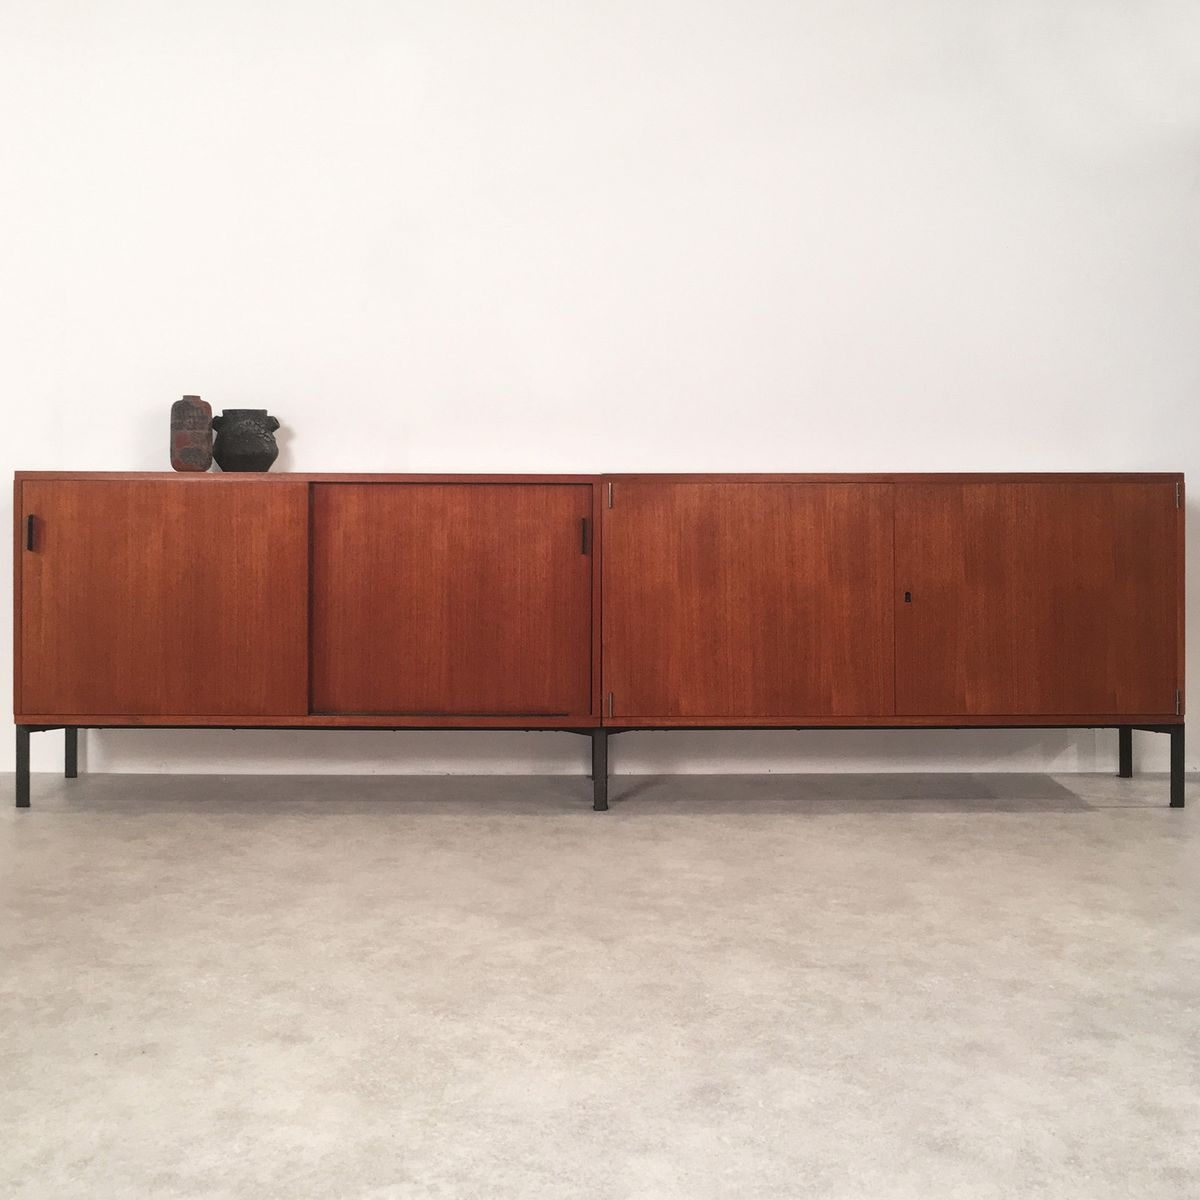 German sideboard by herbert hirche for holz pfel 1955 for for Sideboard 70 cm